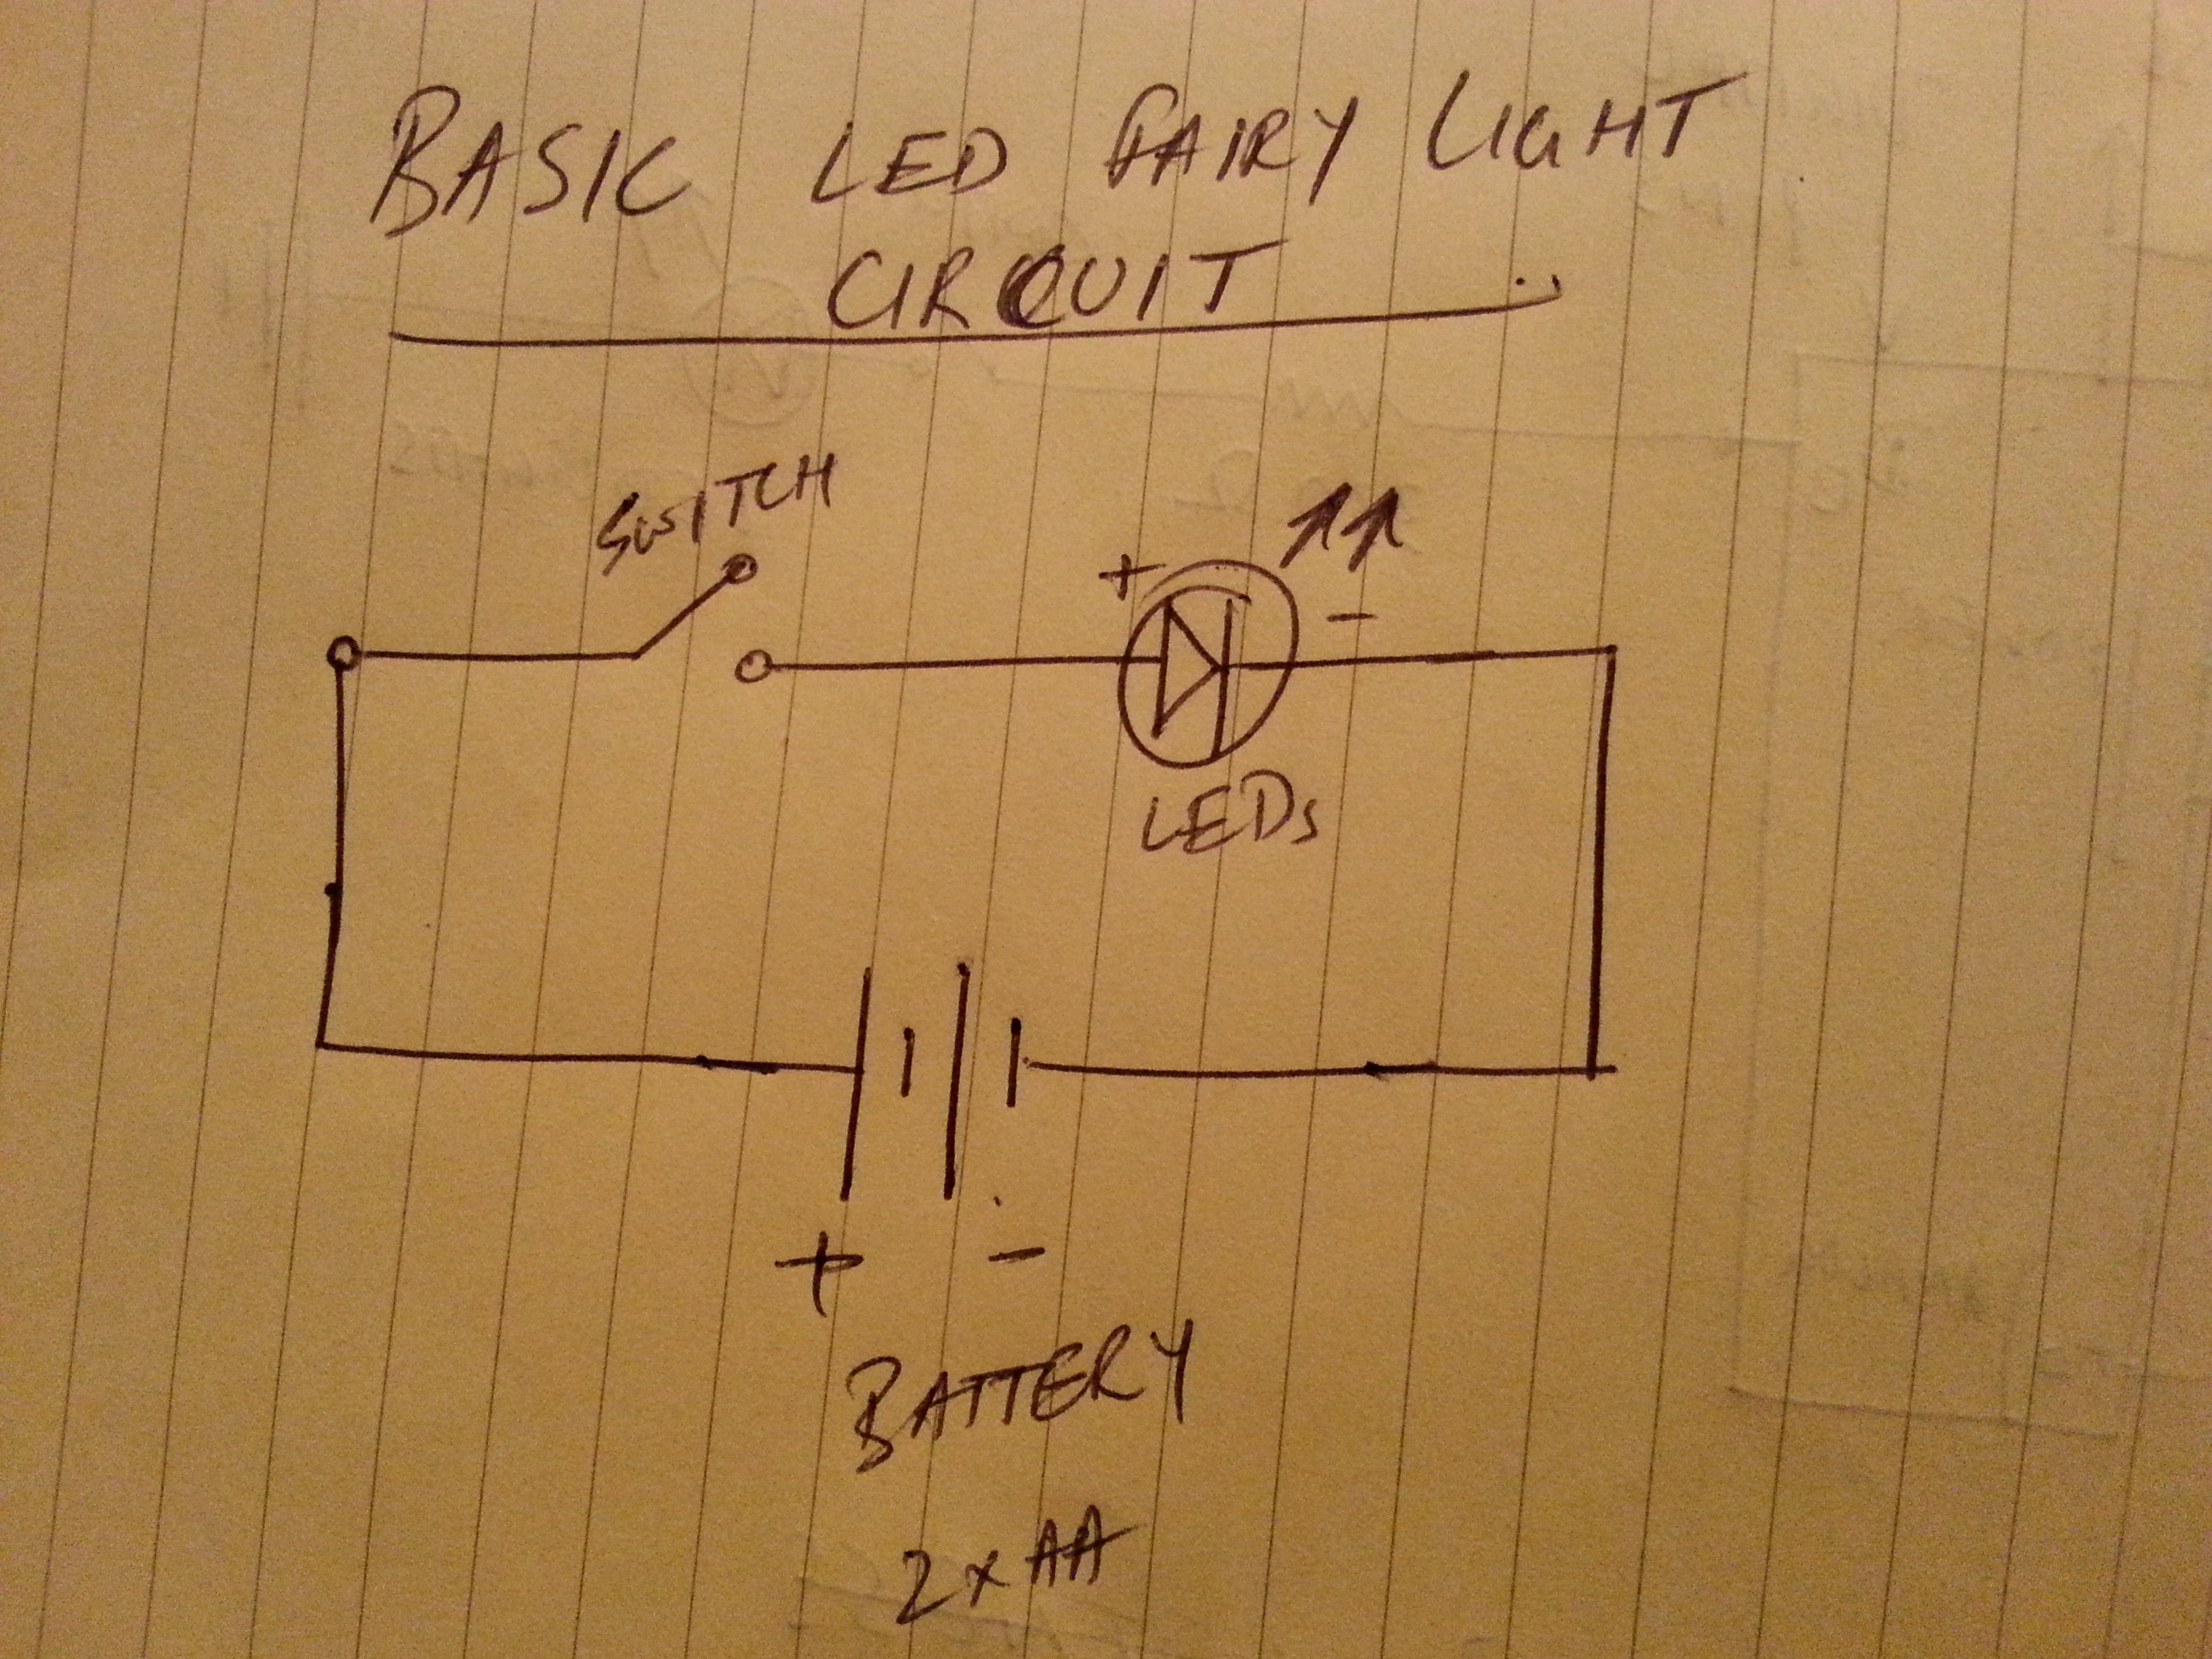 Circuit Light Bulb On Wiring Diagram 3 Wire Led Christmas Lights